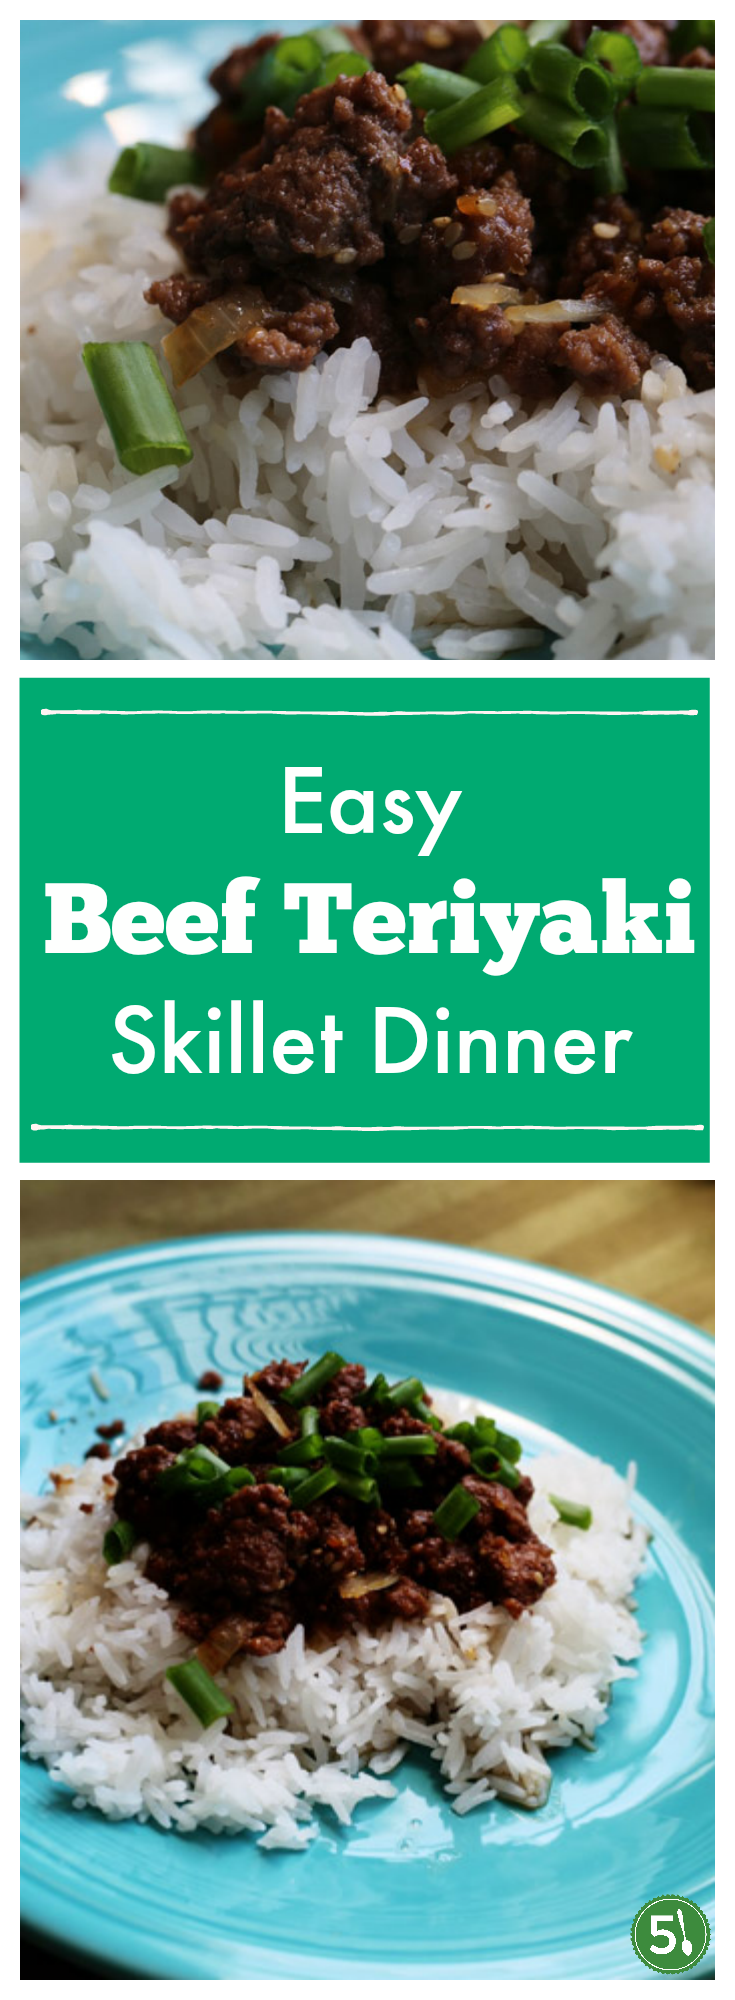 Easy beef teriyaki skillet dinner ready in 20 minutes.  So delicious and a dish the whole family will enjoy.